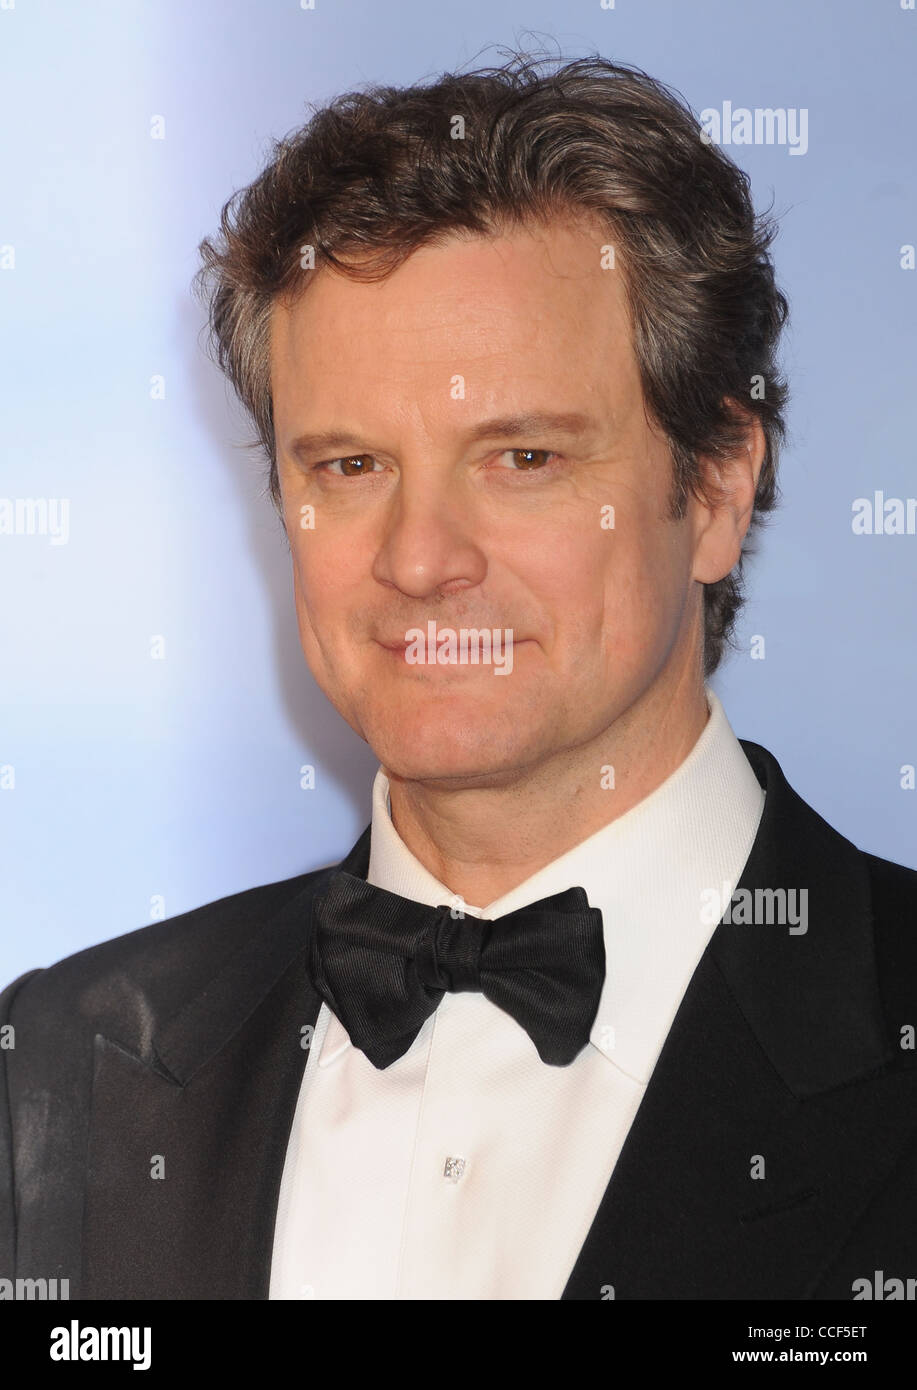 COLIN FIRTH UK Filmschauspieler im Januar 2012. Foto Jeffrey Mayer Stockbild